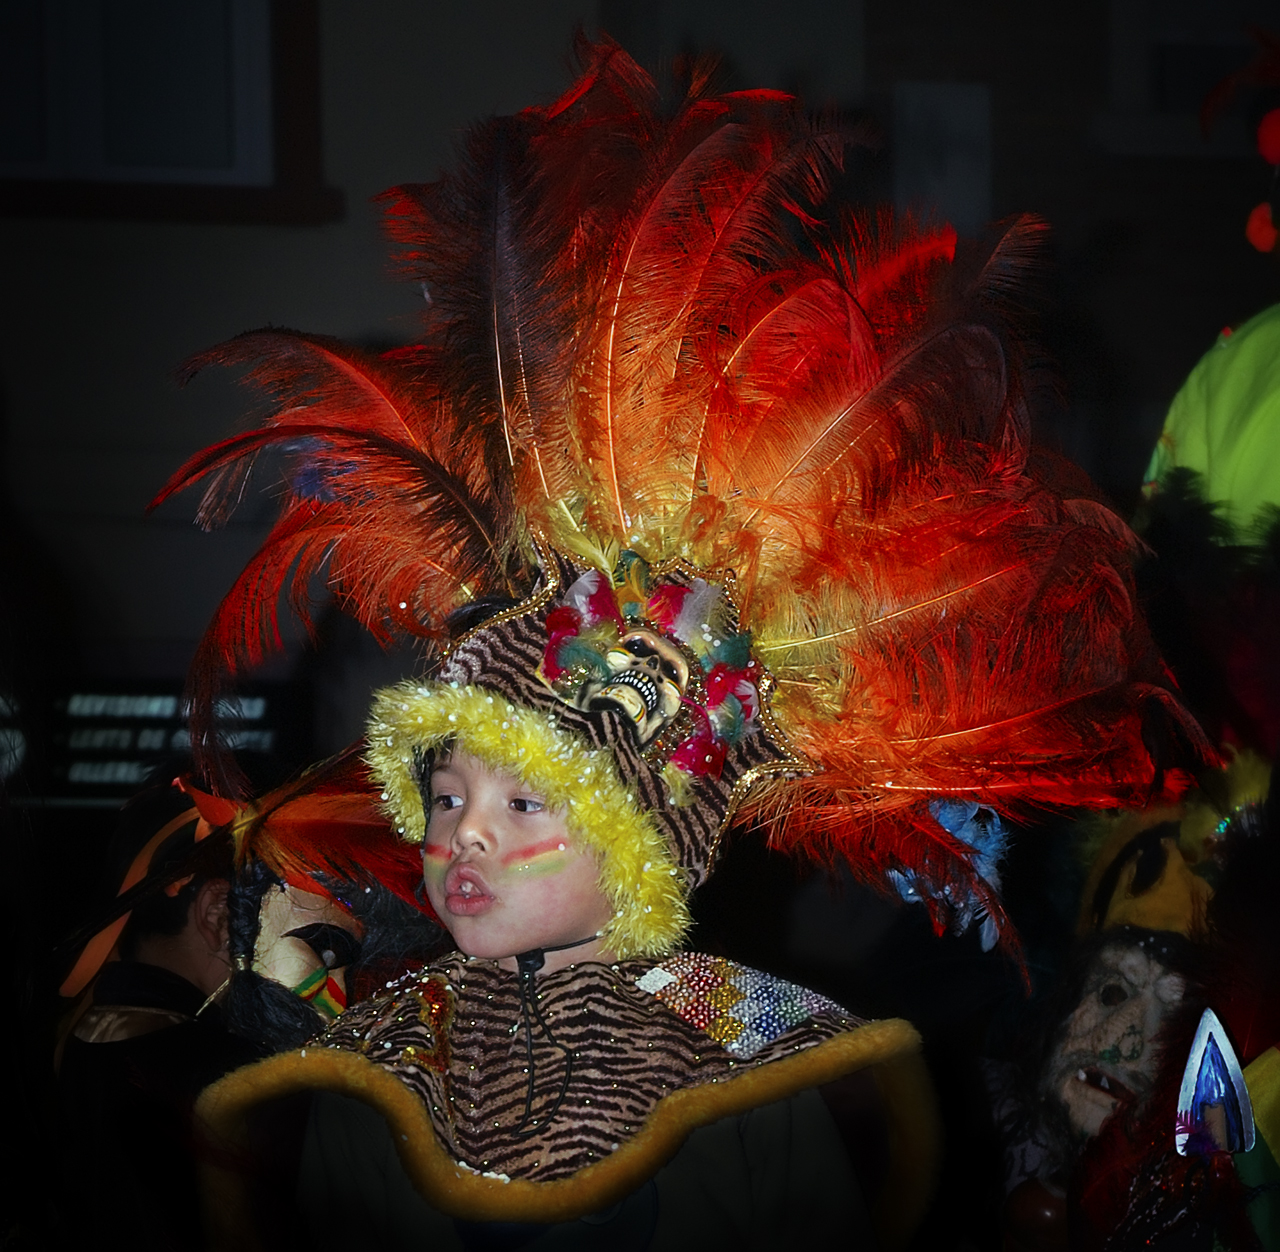 Kid wearing indigenous carnival feathered costume